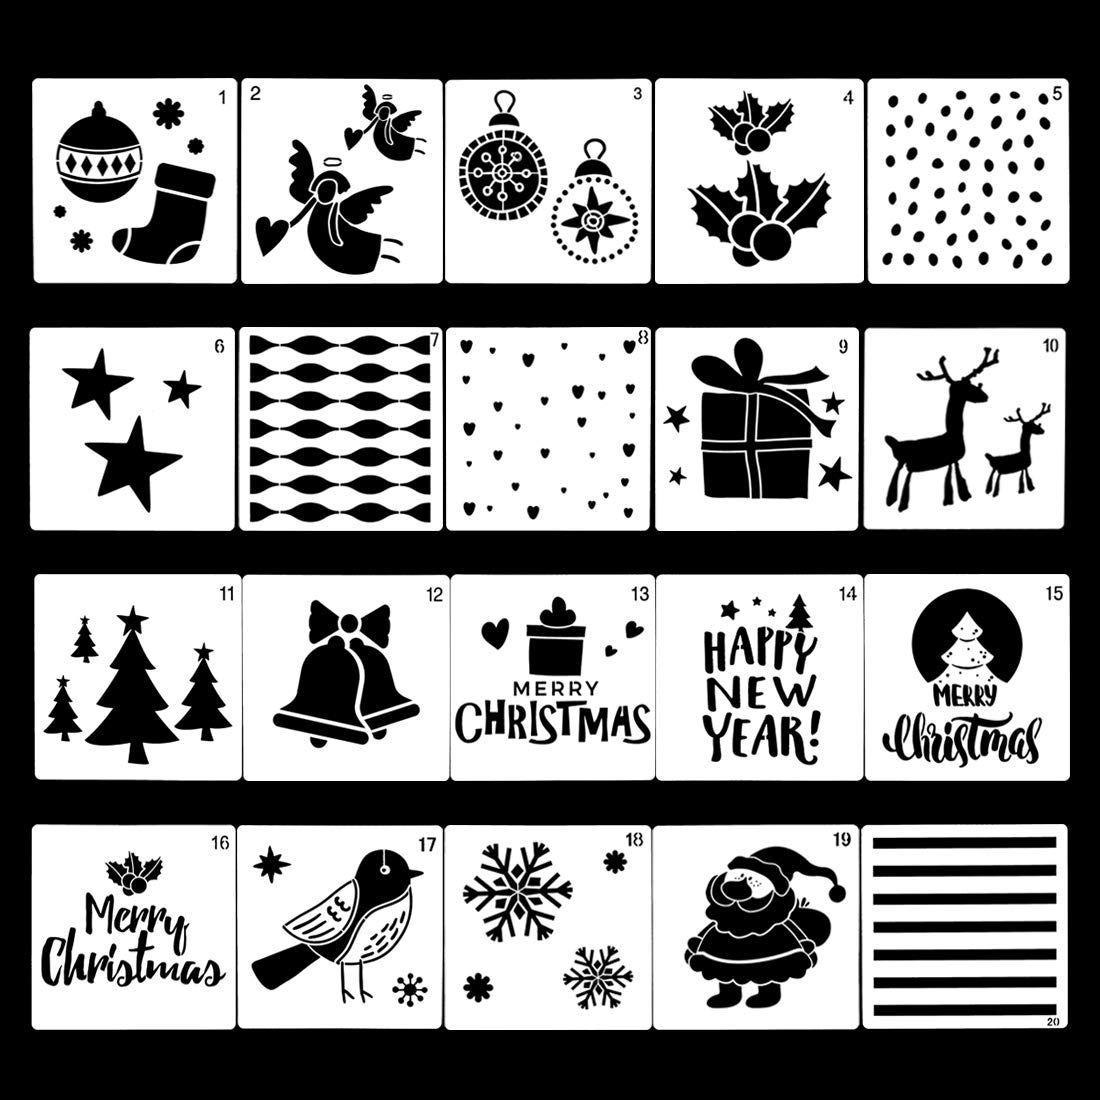 Finelnno 20 PCS Christmas Painting Stencils Craft Stencils for Painting on Wood Reusable Template Plastic Christmas Decor Indoor and Outdoor (20 PCS -A) by Finelnno